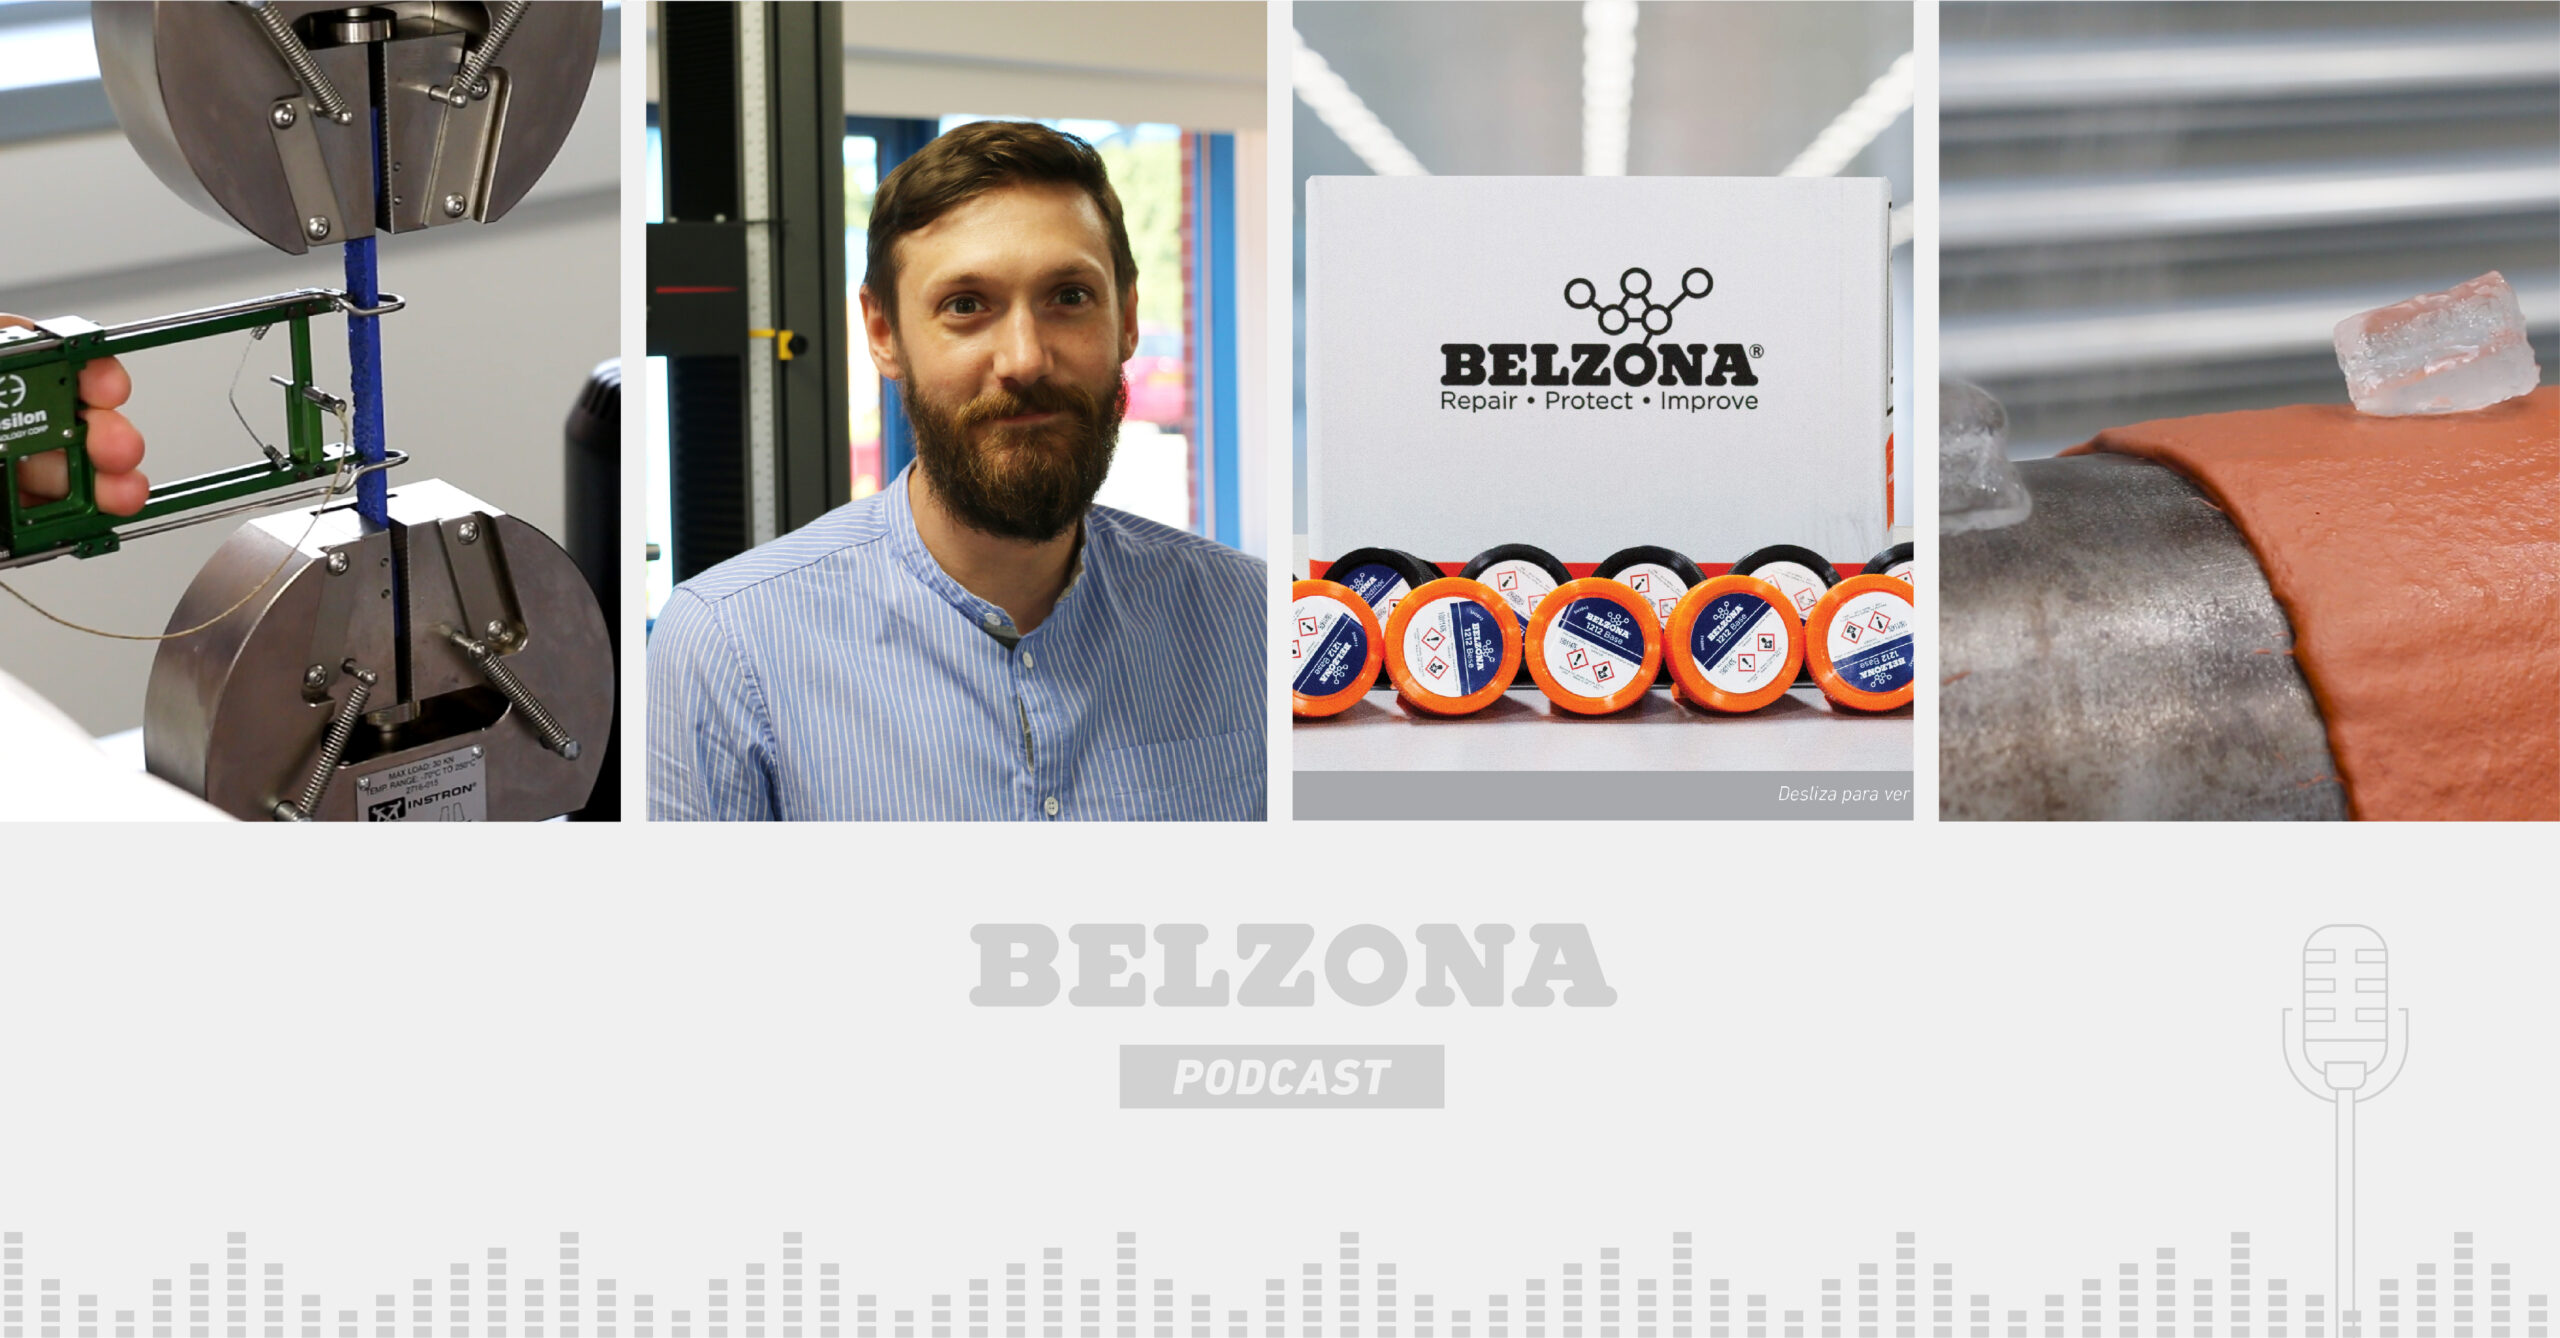 The Belzona Podcast – Episode 3: An Insight into Research & Development at Belzona